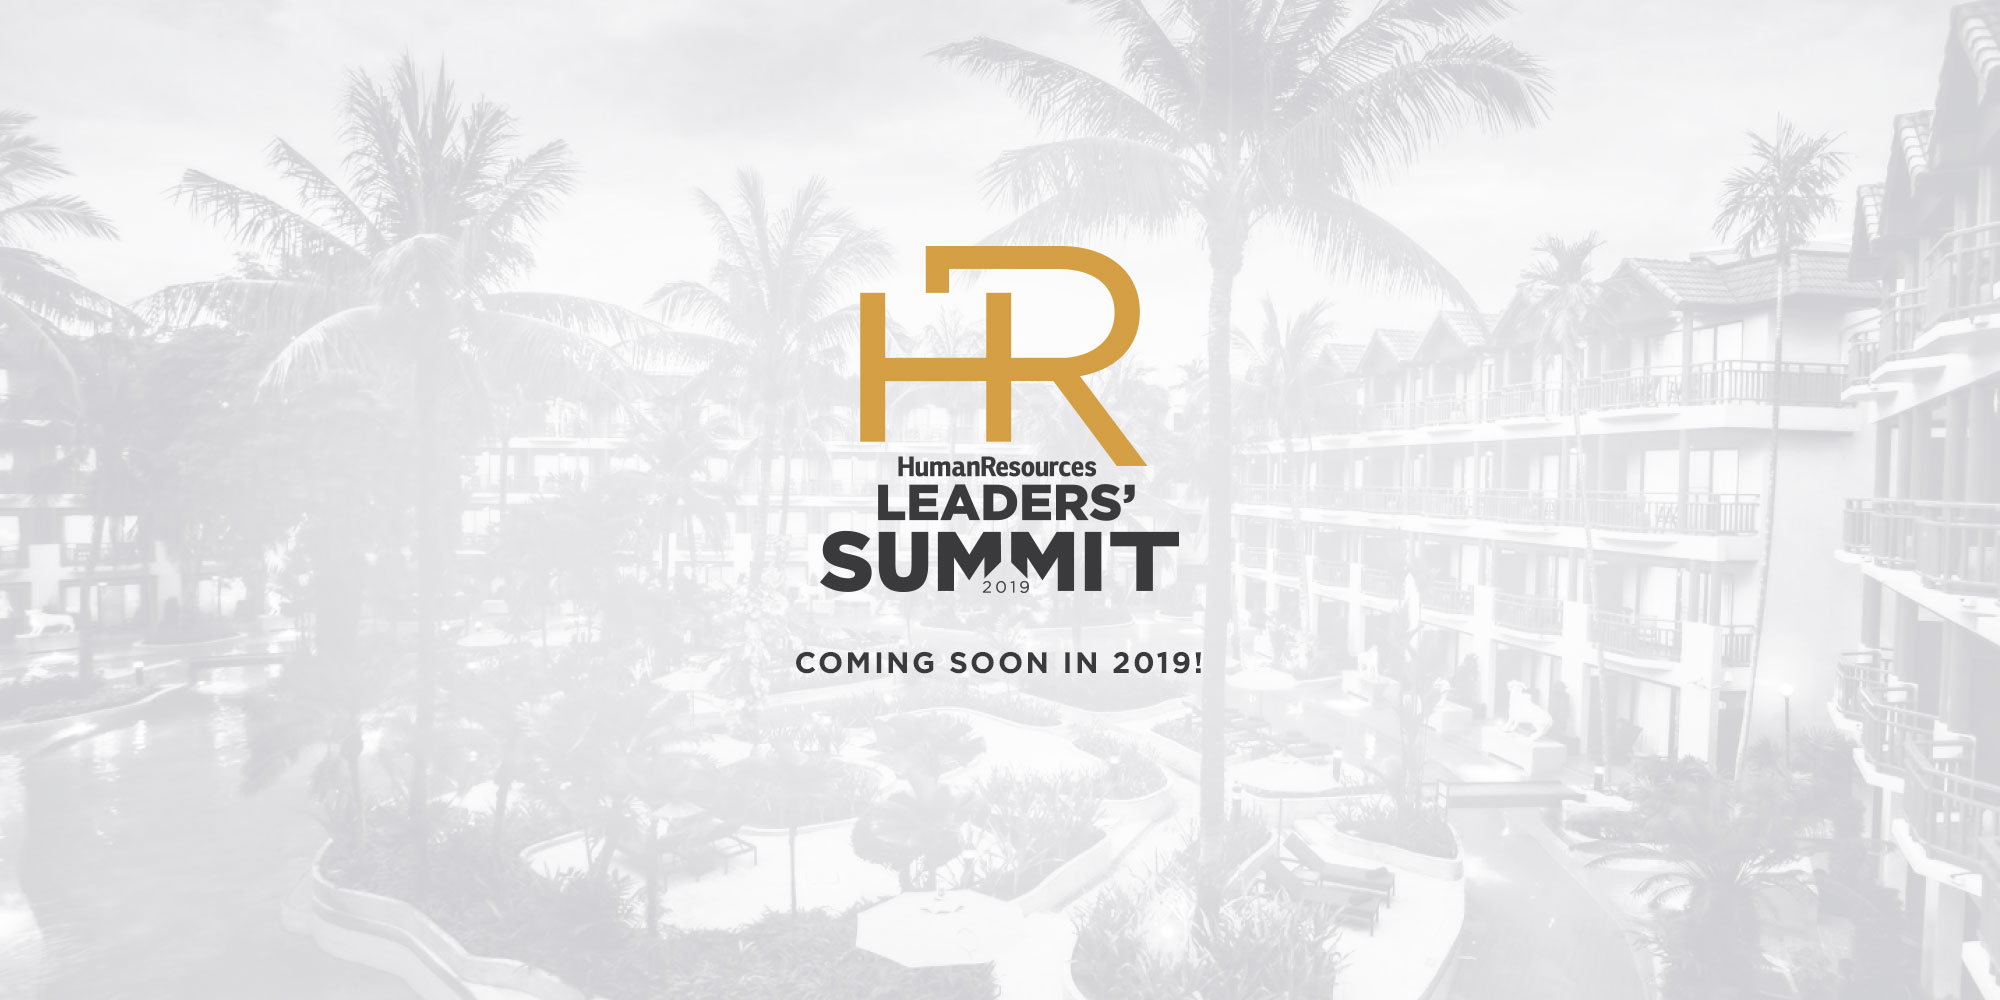 HR Leaders' Summit